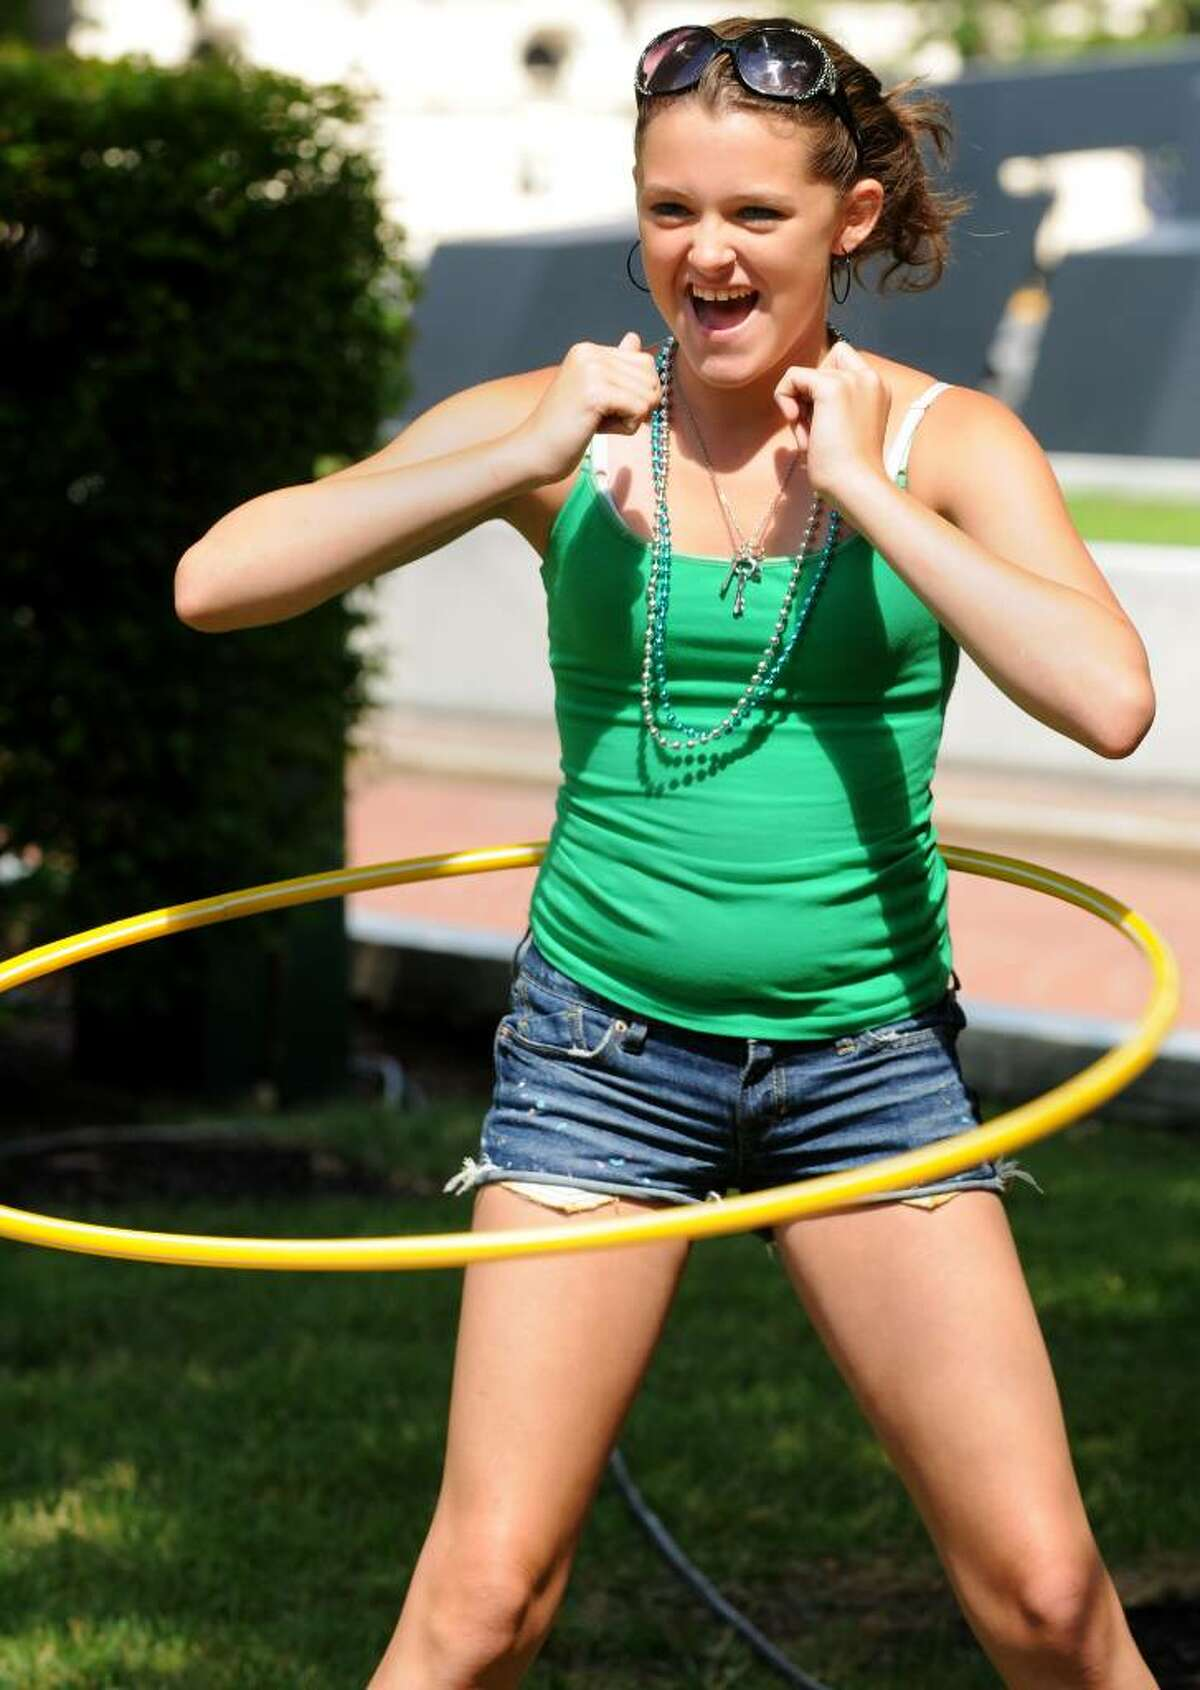 """Erika Cardin, of Albany, gets her groove on as she competes in the Disney sponsored """"Hula Hoop Contest"""" at GE's Kids Day on Sunday, July 18, 2010, at the Empire State Plaza in Albany, NY. The General Electric sponsored event treated children to bouncy bounce setups, food, a petting zoo, pony rides, crafts, characters to meet and face painting for the day. Luanne M. Ferris / Times Union"""